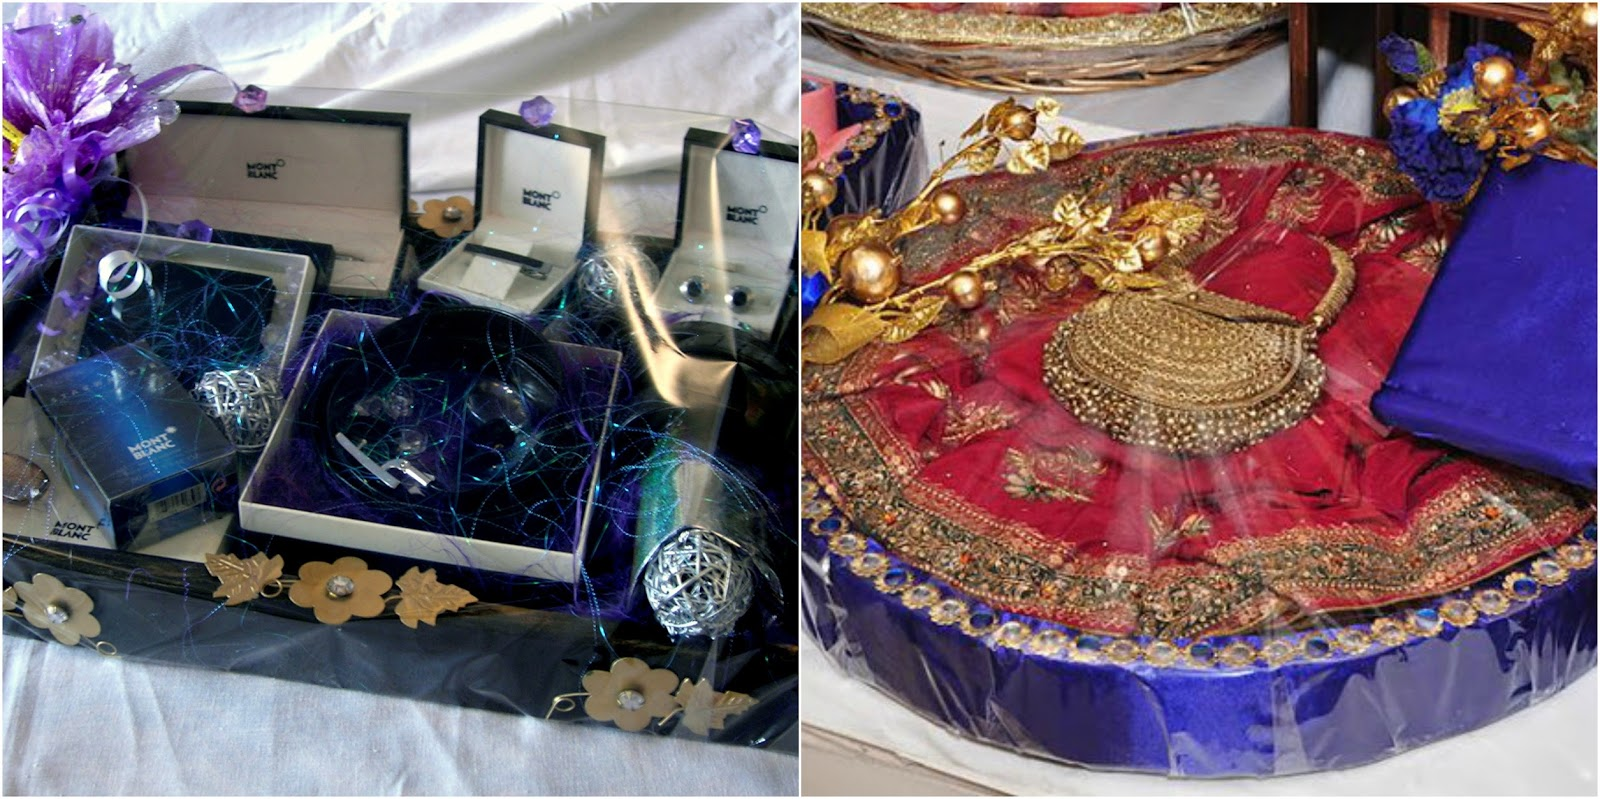 Wedding Gift For Groom Indian : Ideas Gift Ideas For Indian Wedding indian wedding gift ideas for ...